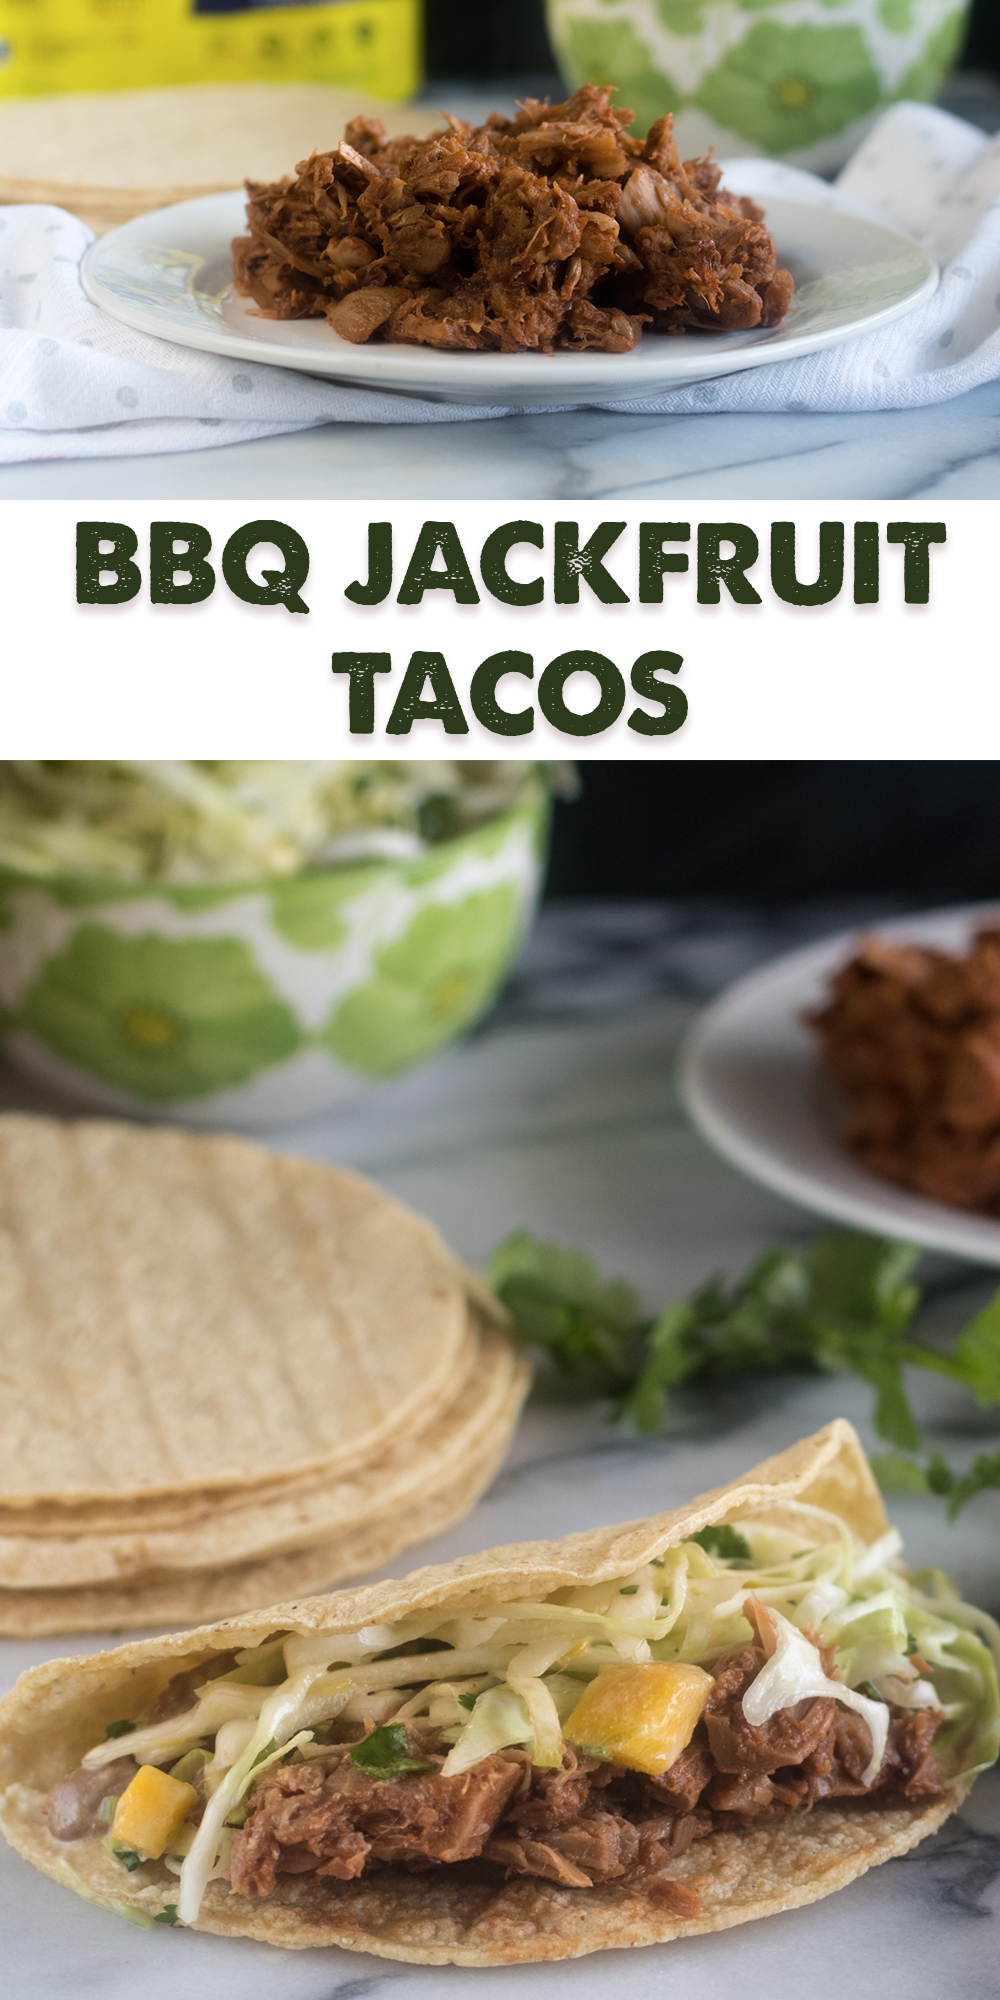 Switch of taco night with these BBQ Jackfruit Tacos with Avocado Mango Cabbage Slaw! #vegan #taco #recipe #jackfruit #healthyrecipes #glutenfree